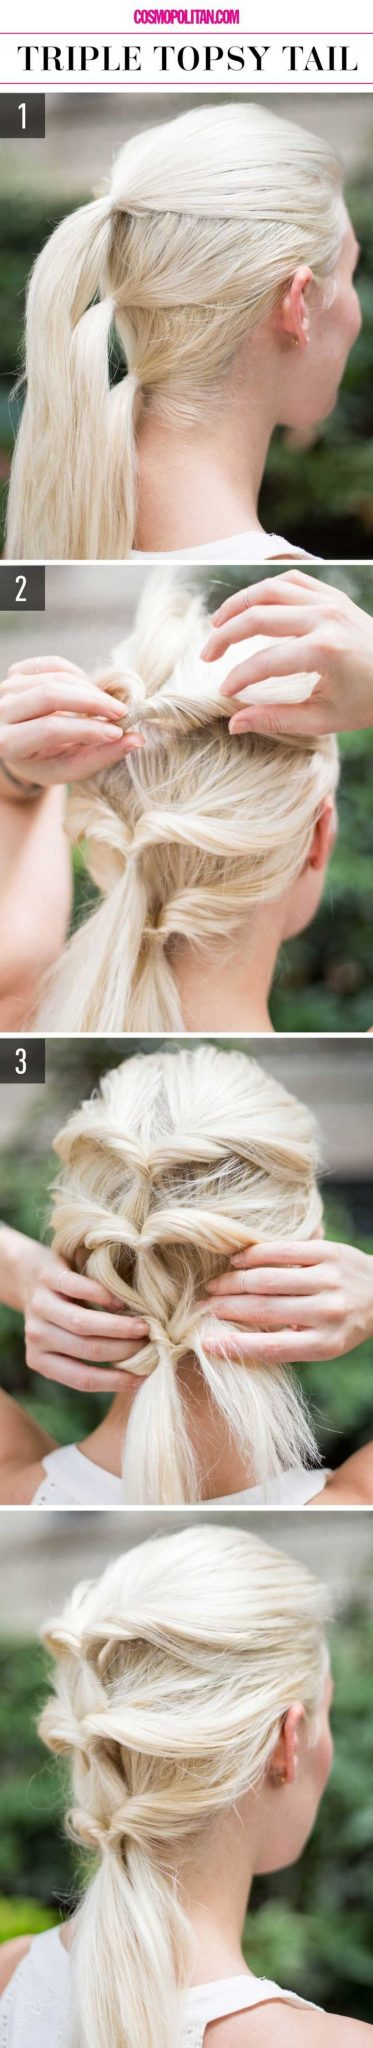 Amazing khaleesi game of thrones hairstyle ideas 5